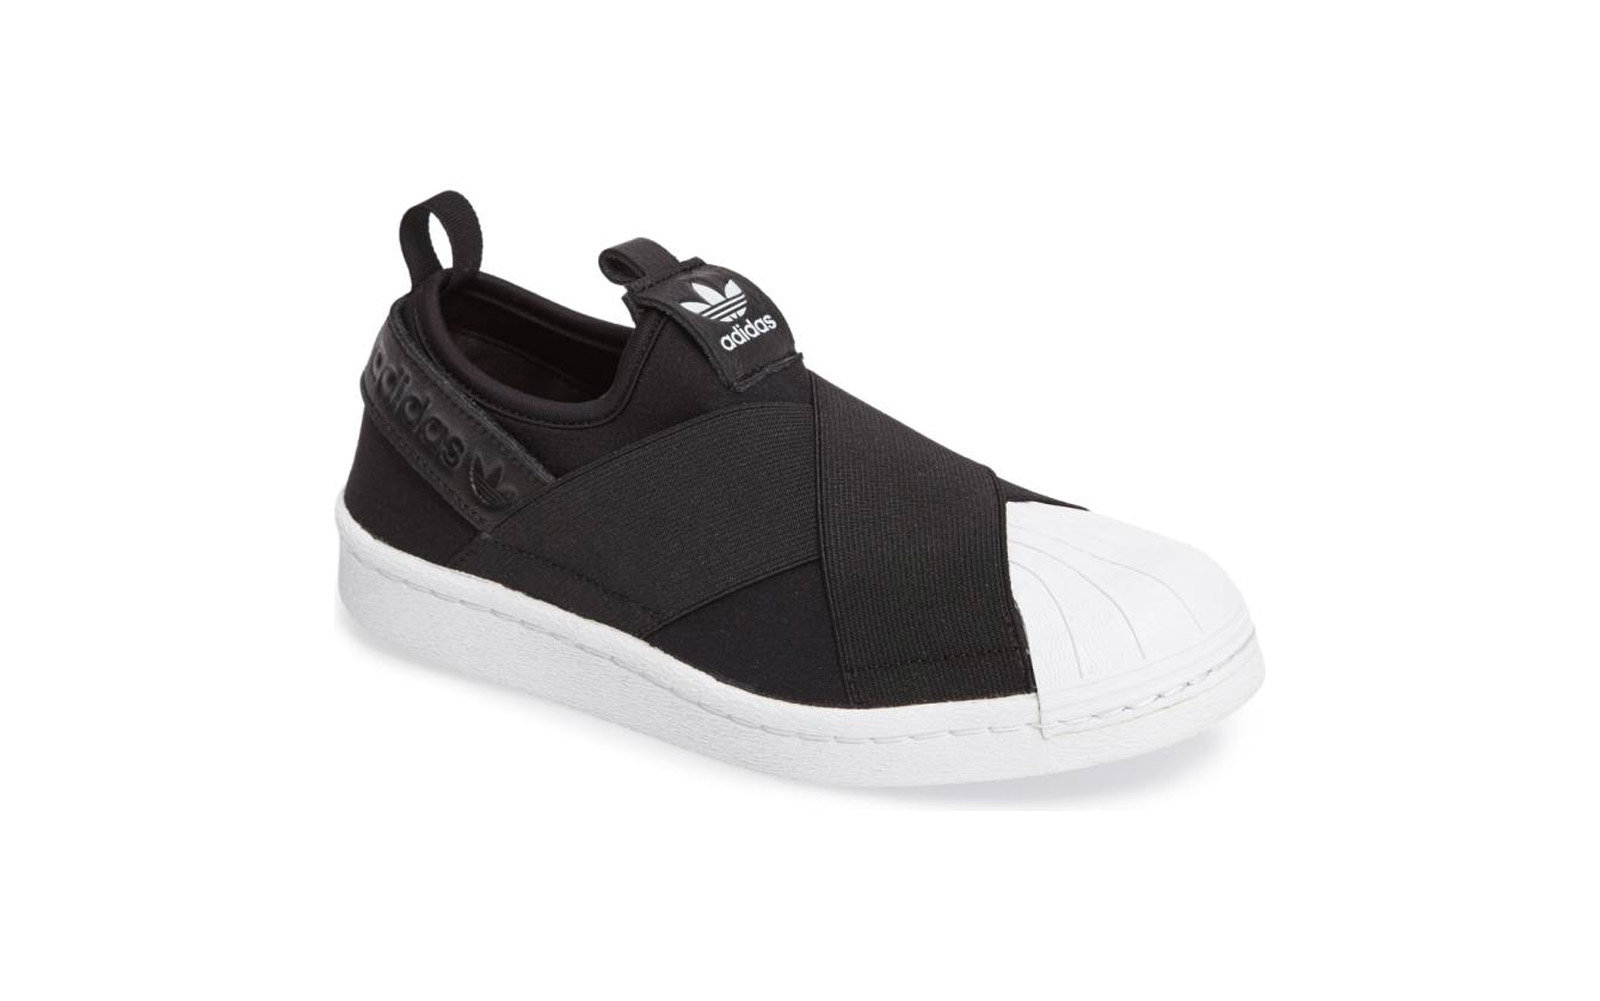 Adidas Superstar Slip-on Sneaker